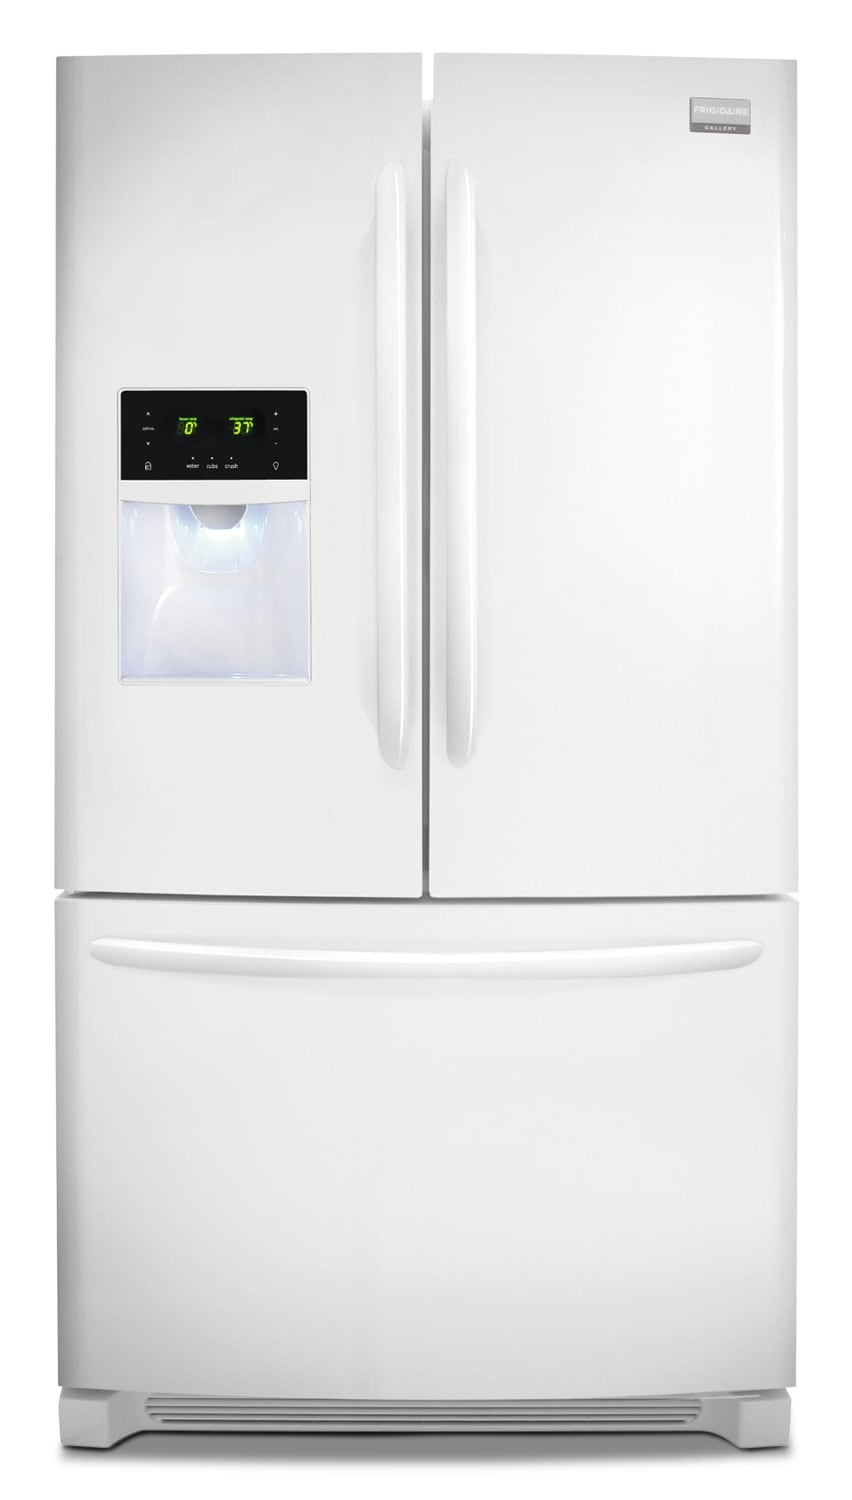 Refrigerators and Freezers - Frigidaire Gallery Pearl White French Door Refrigerator (27.7 Cu. Ft.) - FGHB2866PP